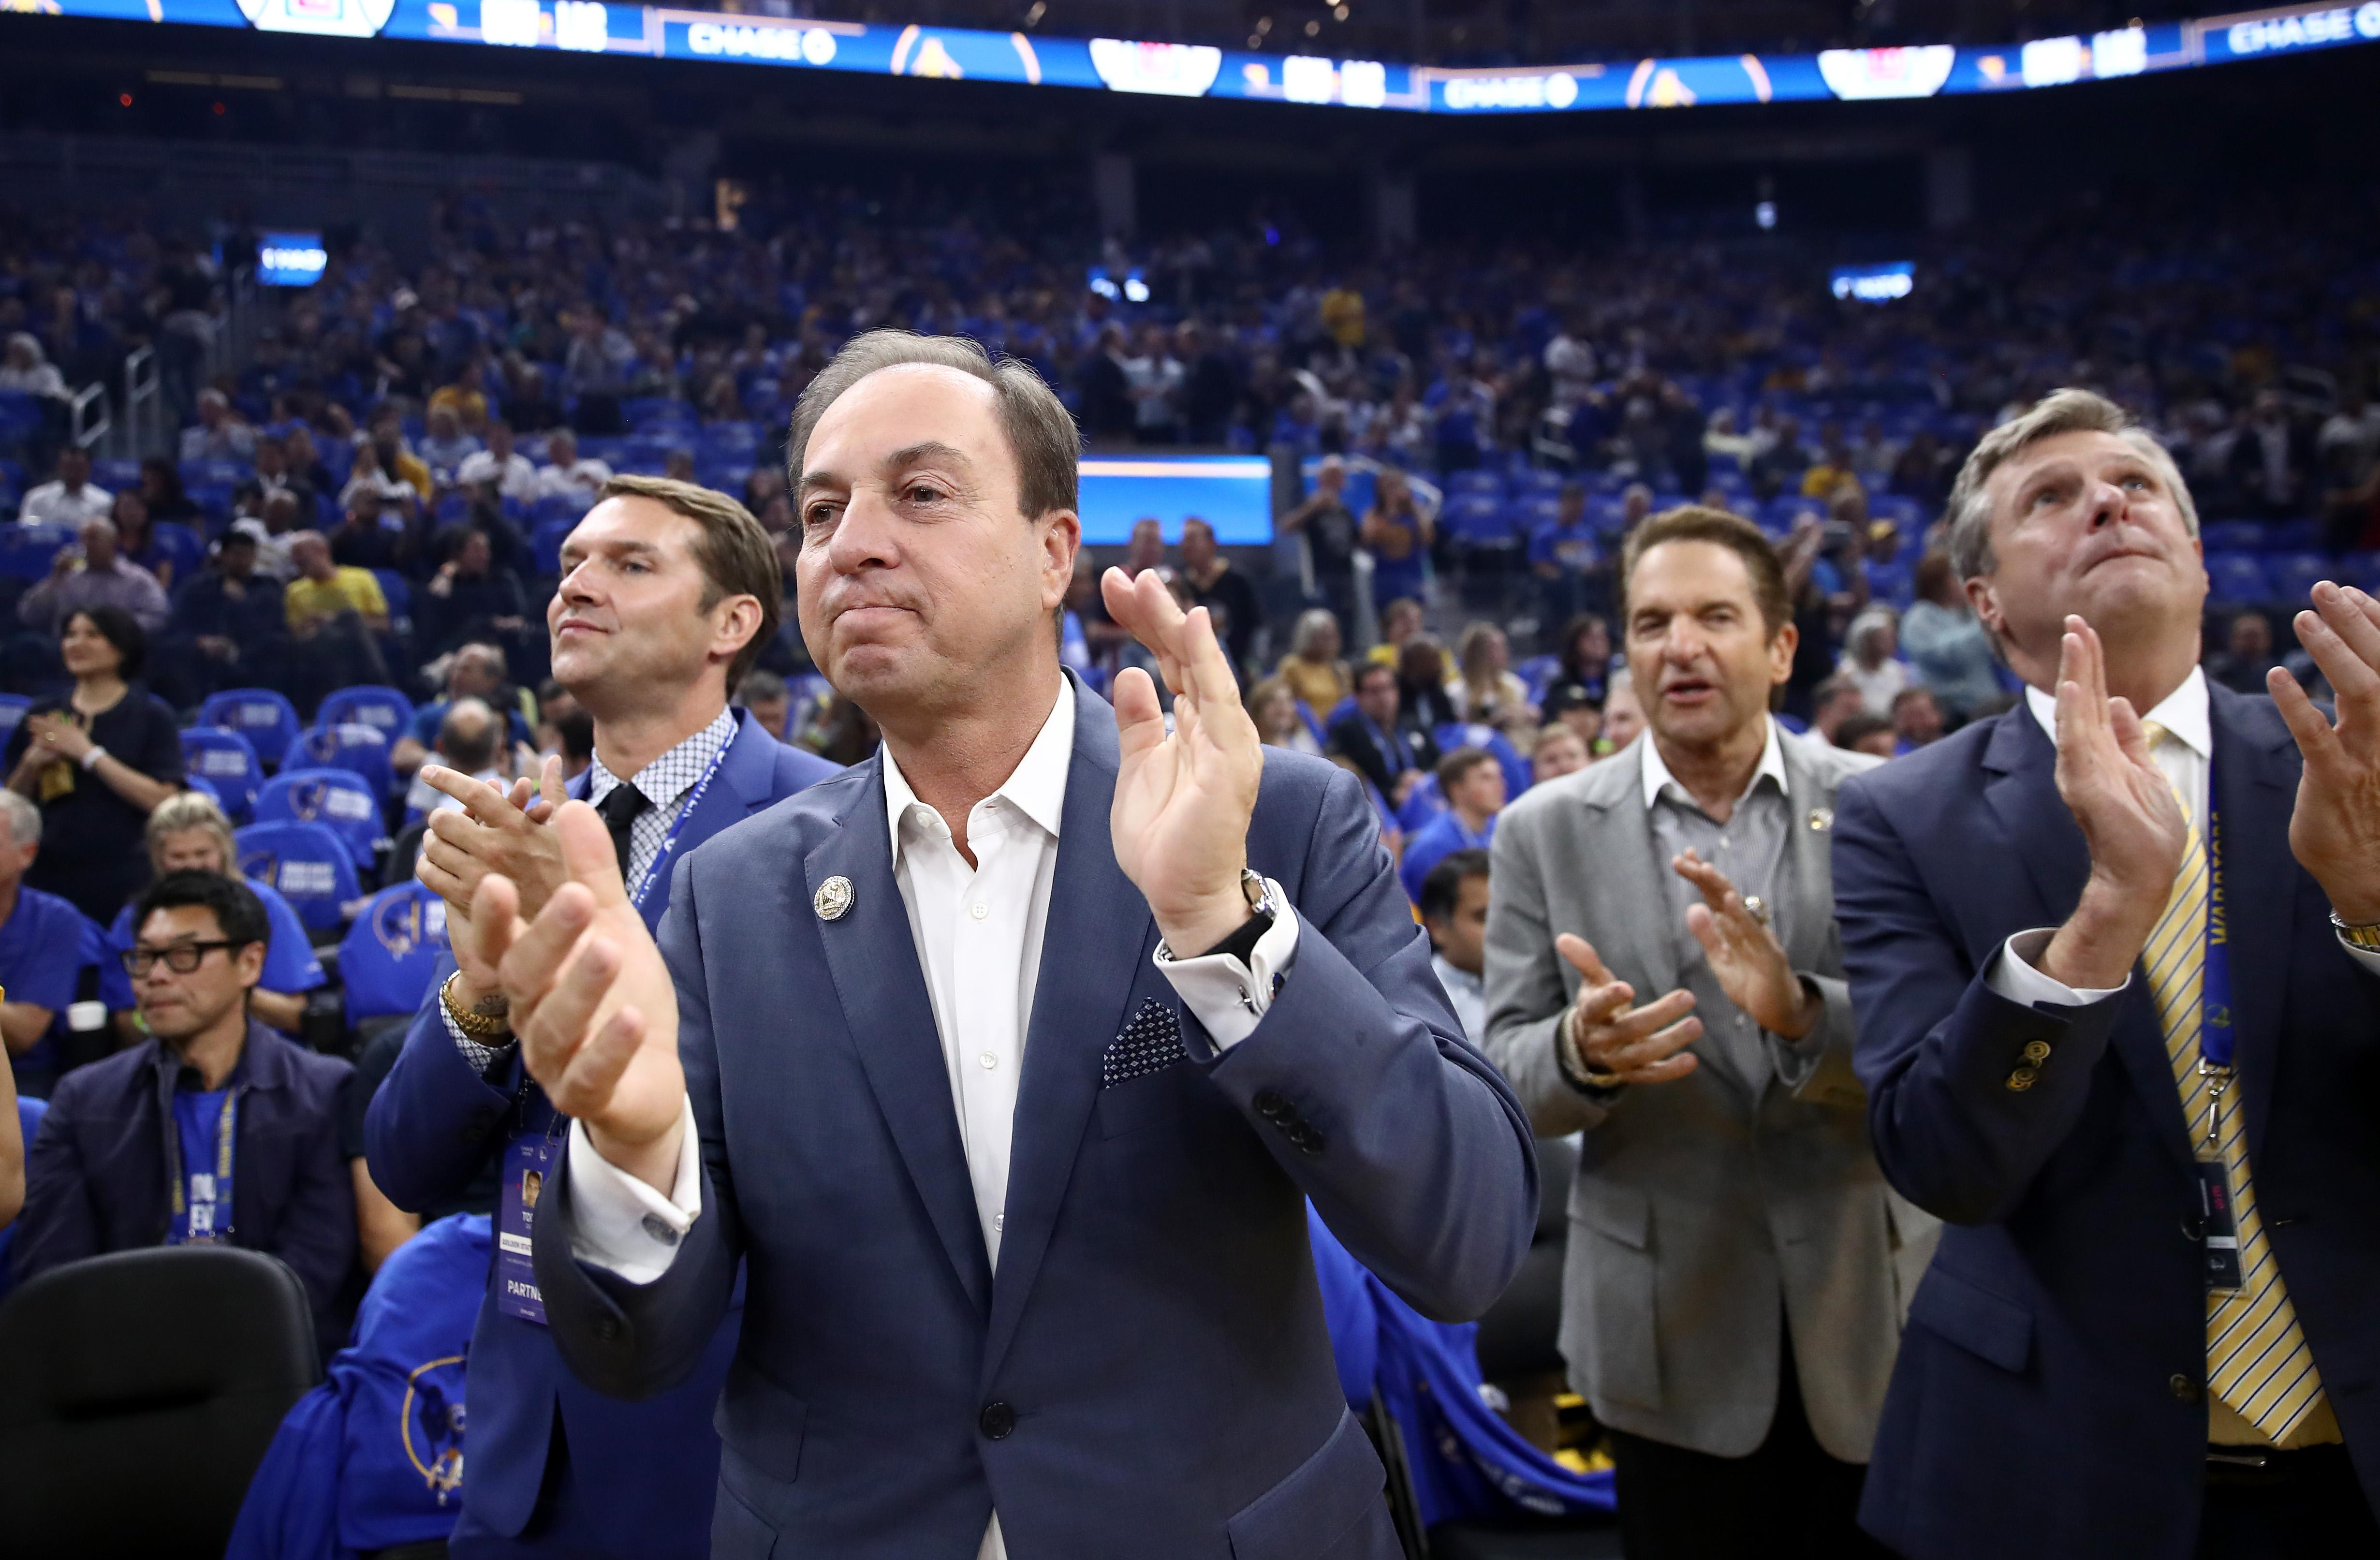 Golden State Warriors owners Joe Lacob and Peter Guber stand with team president and COO Rick Welts